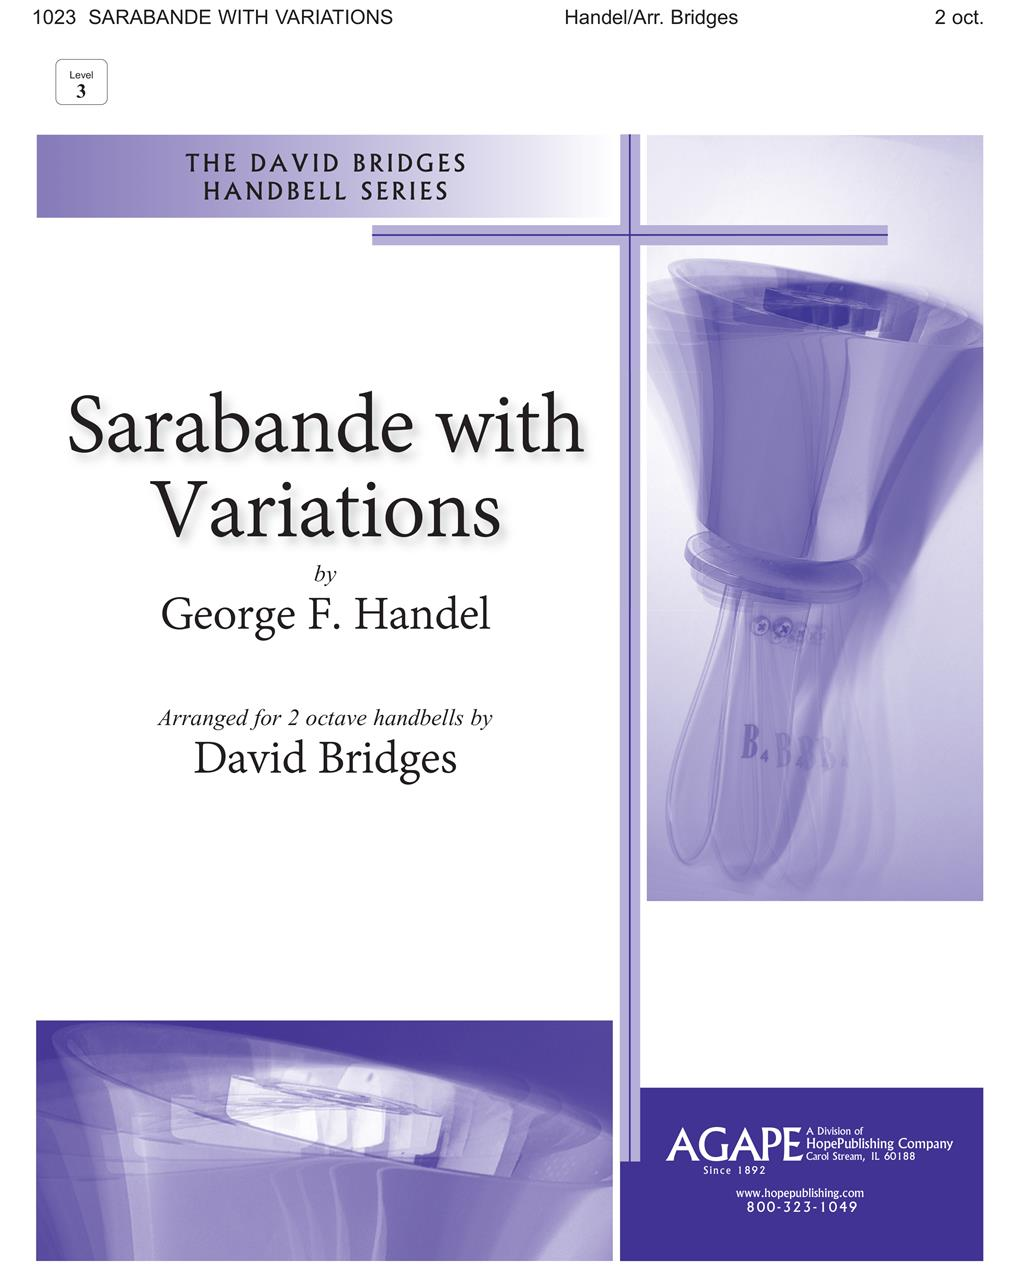 Sarabande with Variations - 2 Oct. Cover Image